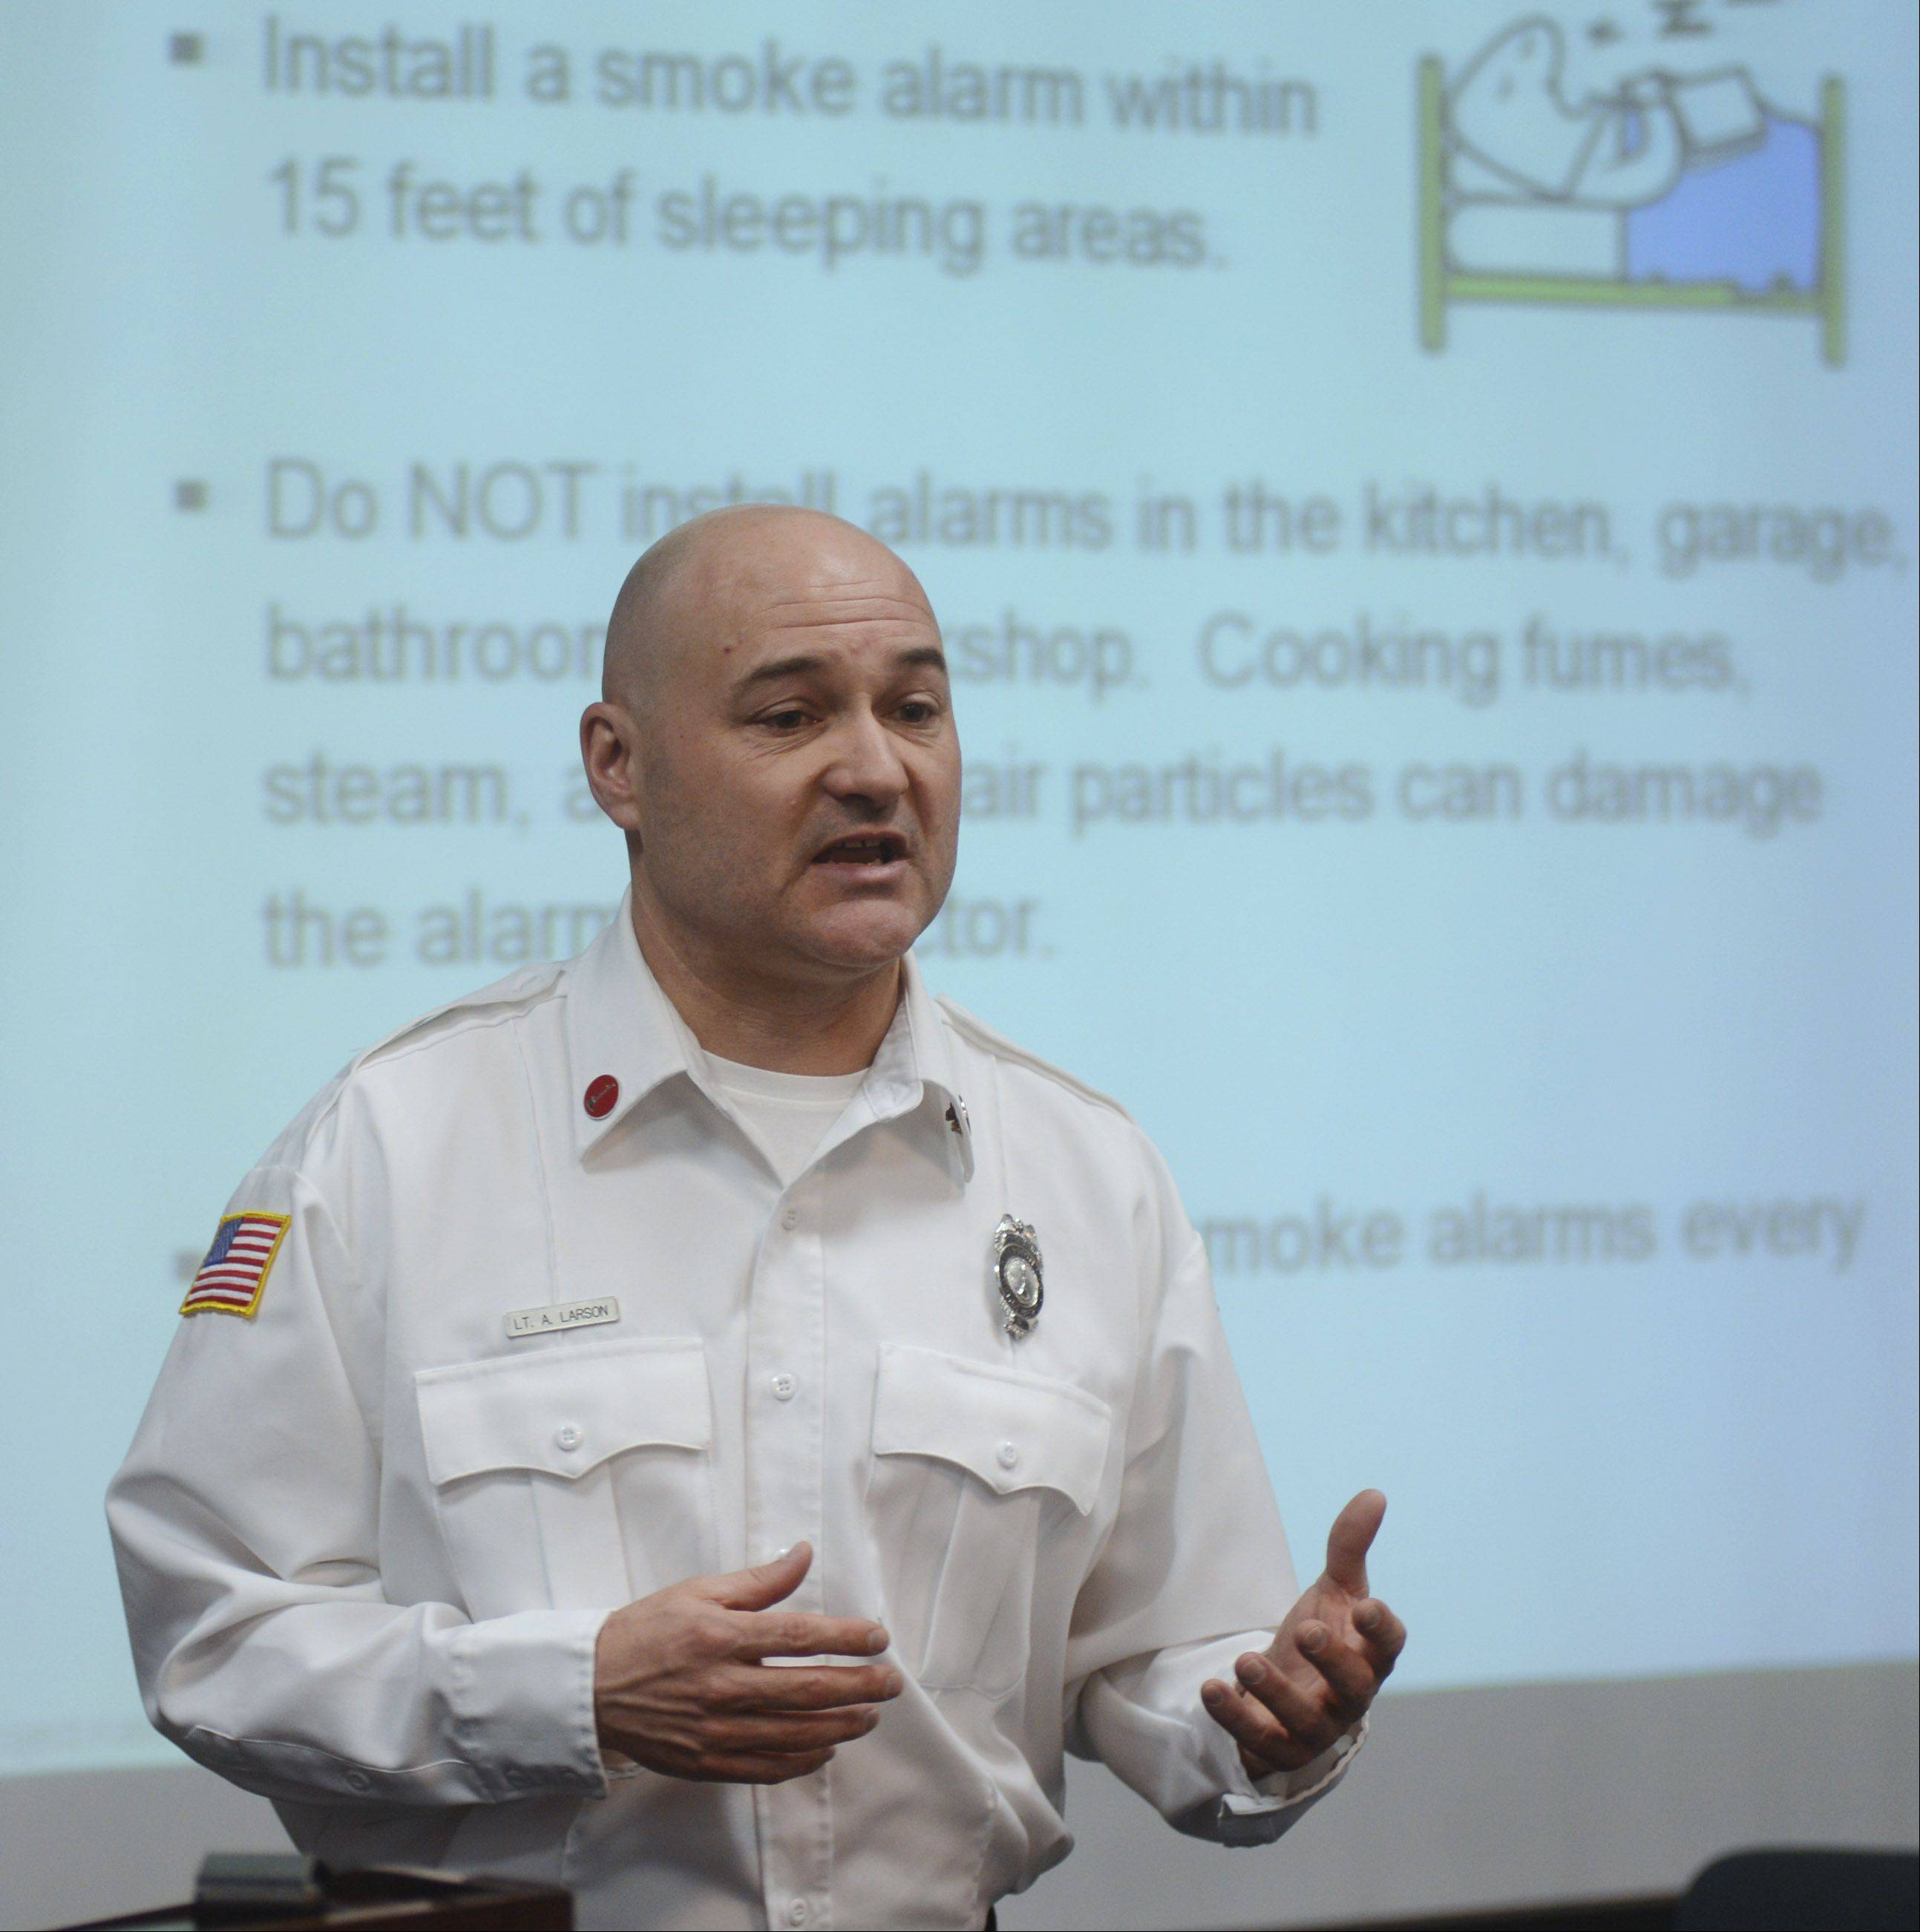 Lt. Andrew Larson talks about proper placement of smoke alarms, as volunteers prepare to help assure that there are working devices in the homes of senior citizens who signed up for the program.